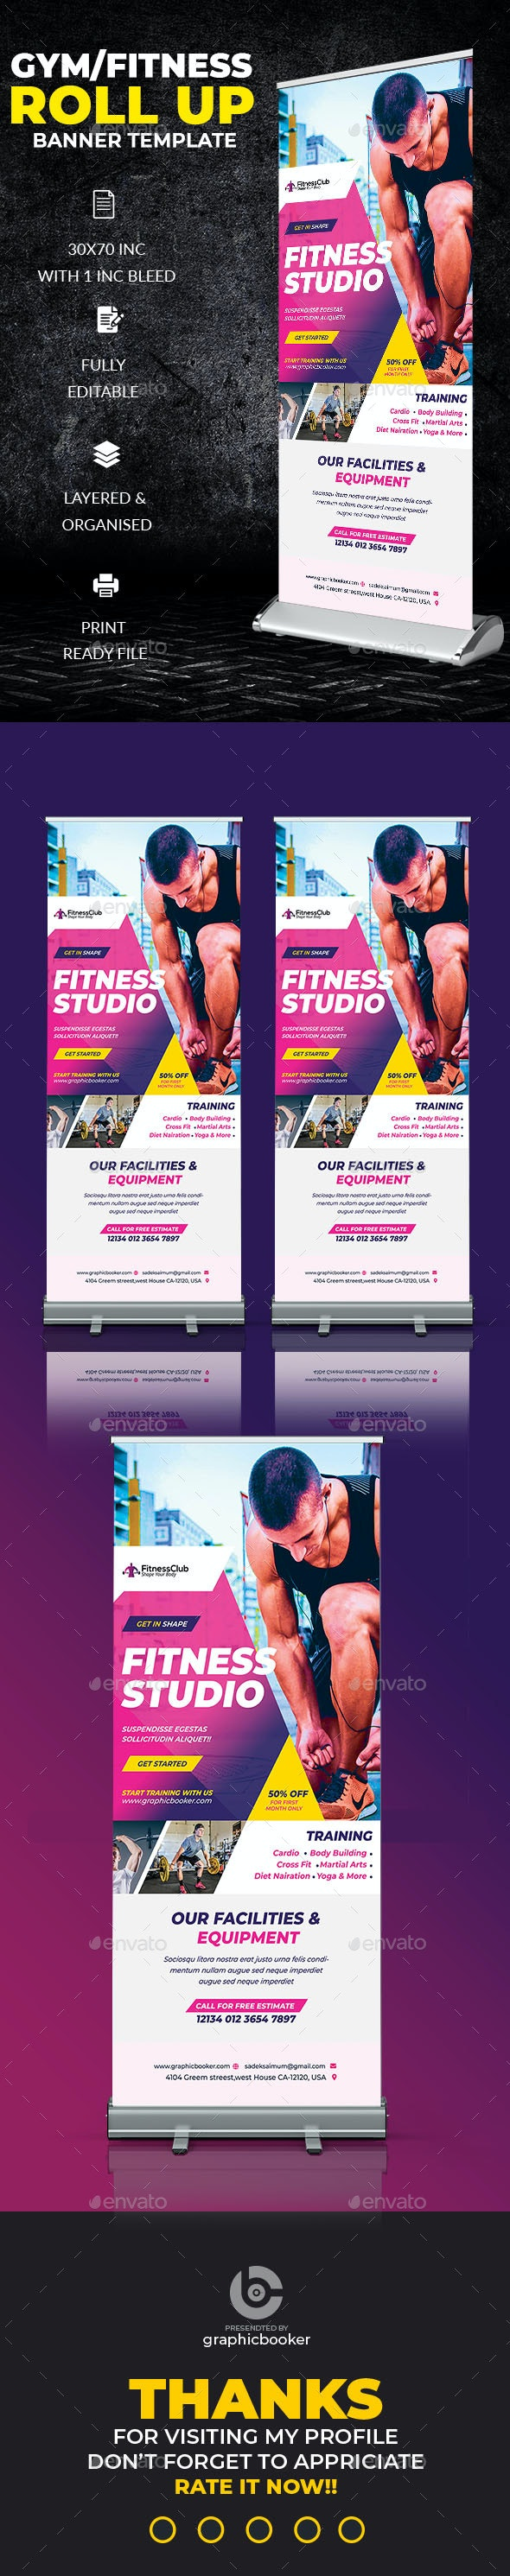 Fitness Roll Up Banner Template - Signage Print Templates